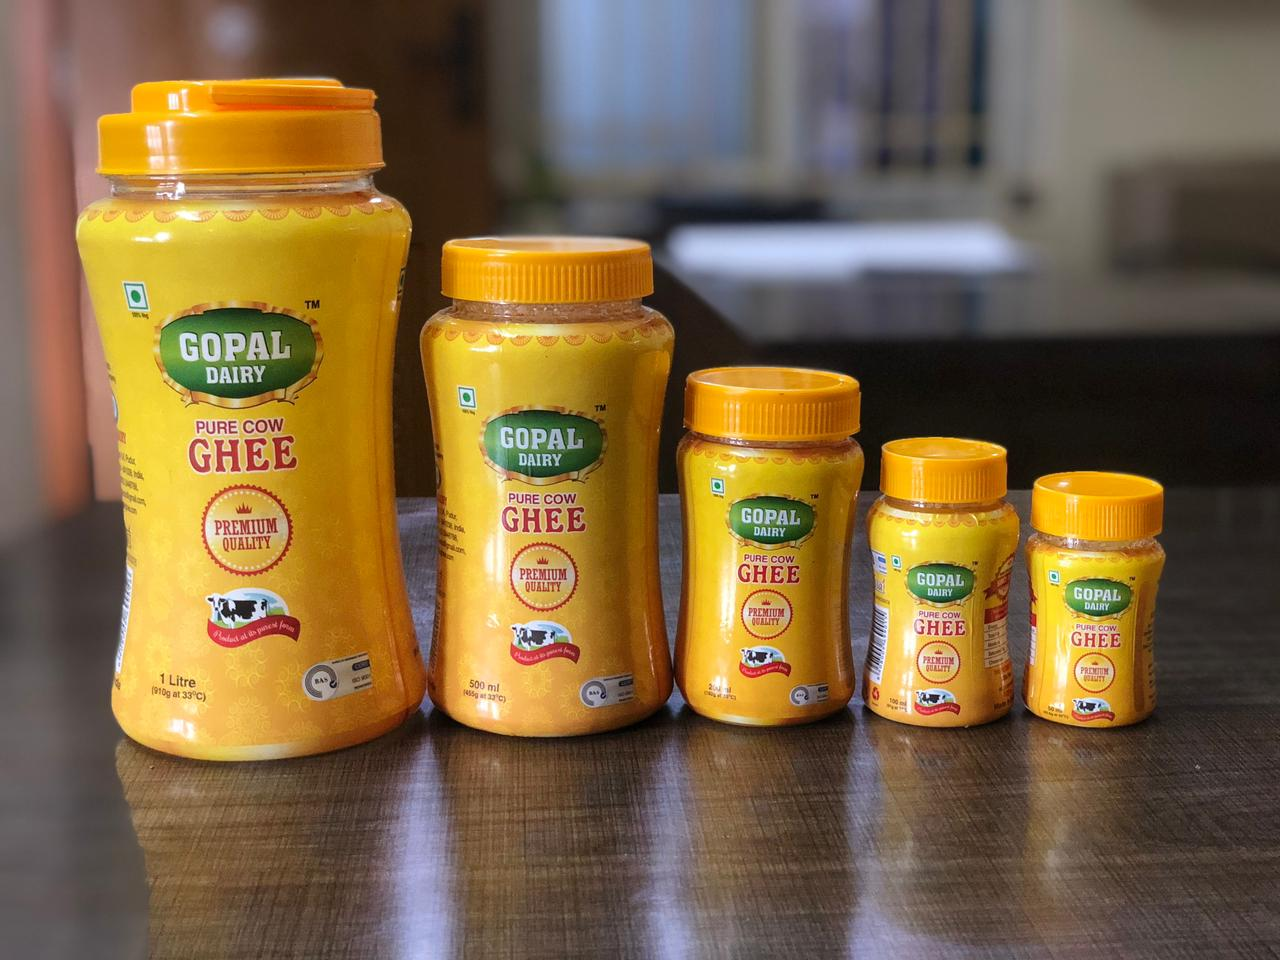 Gopal-Dairy-products